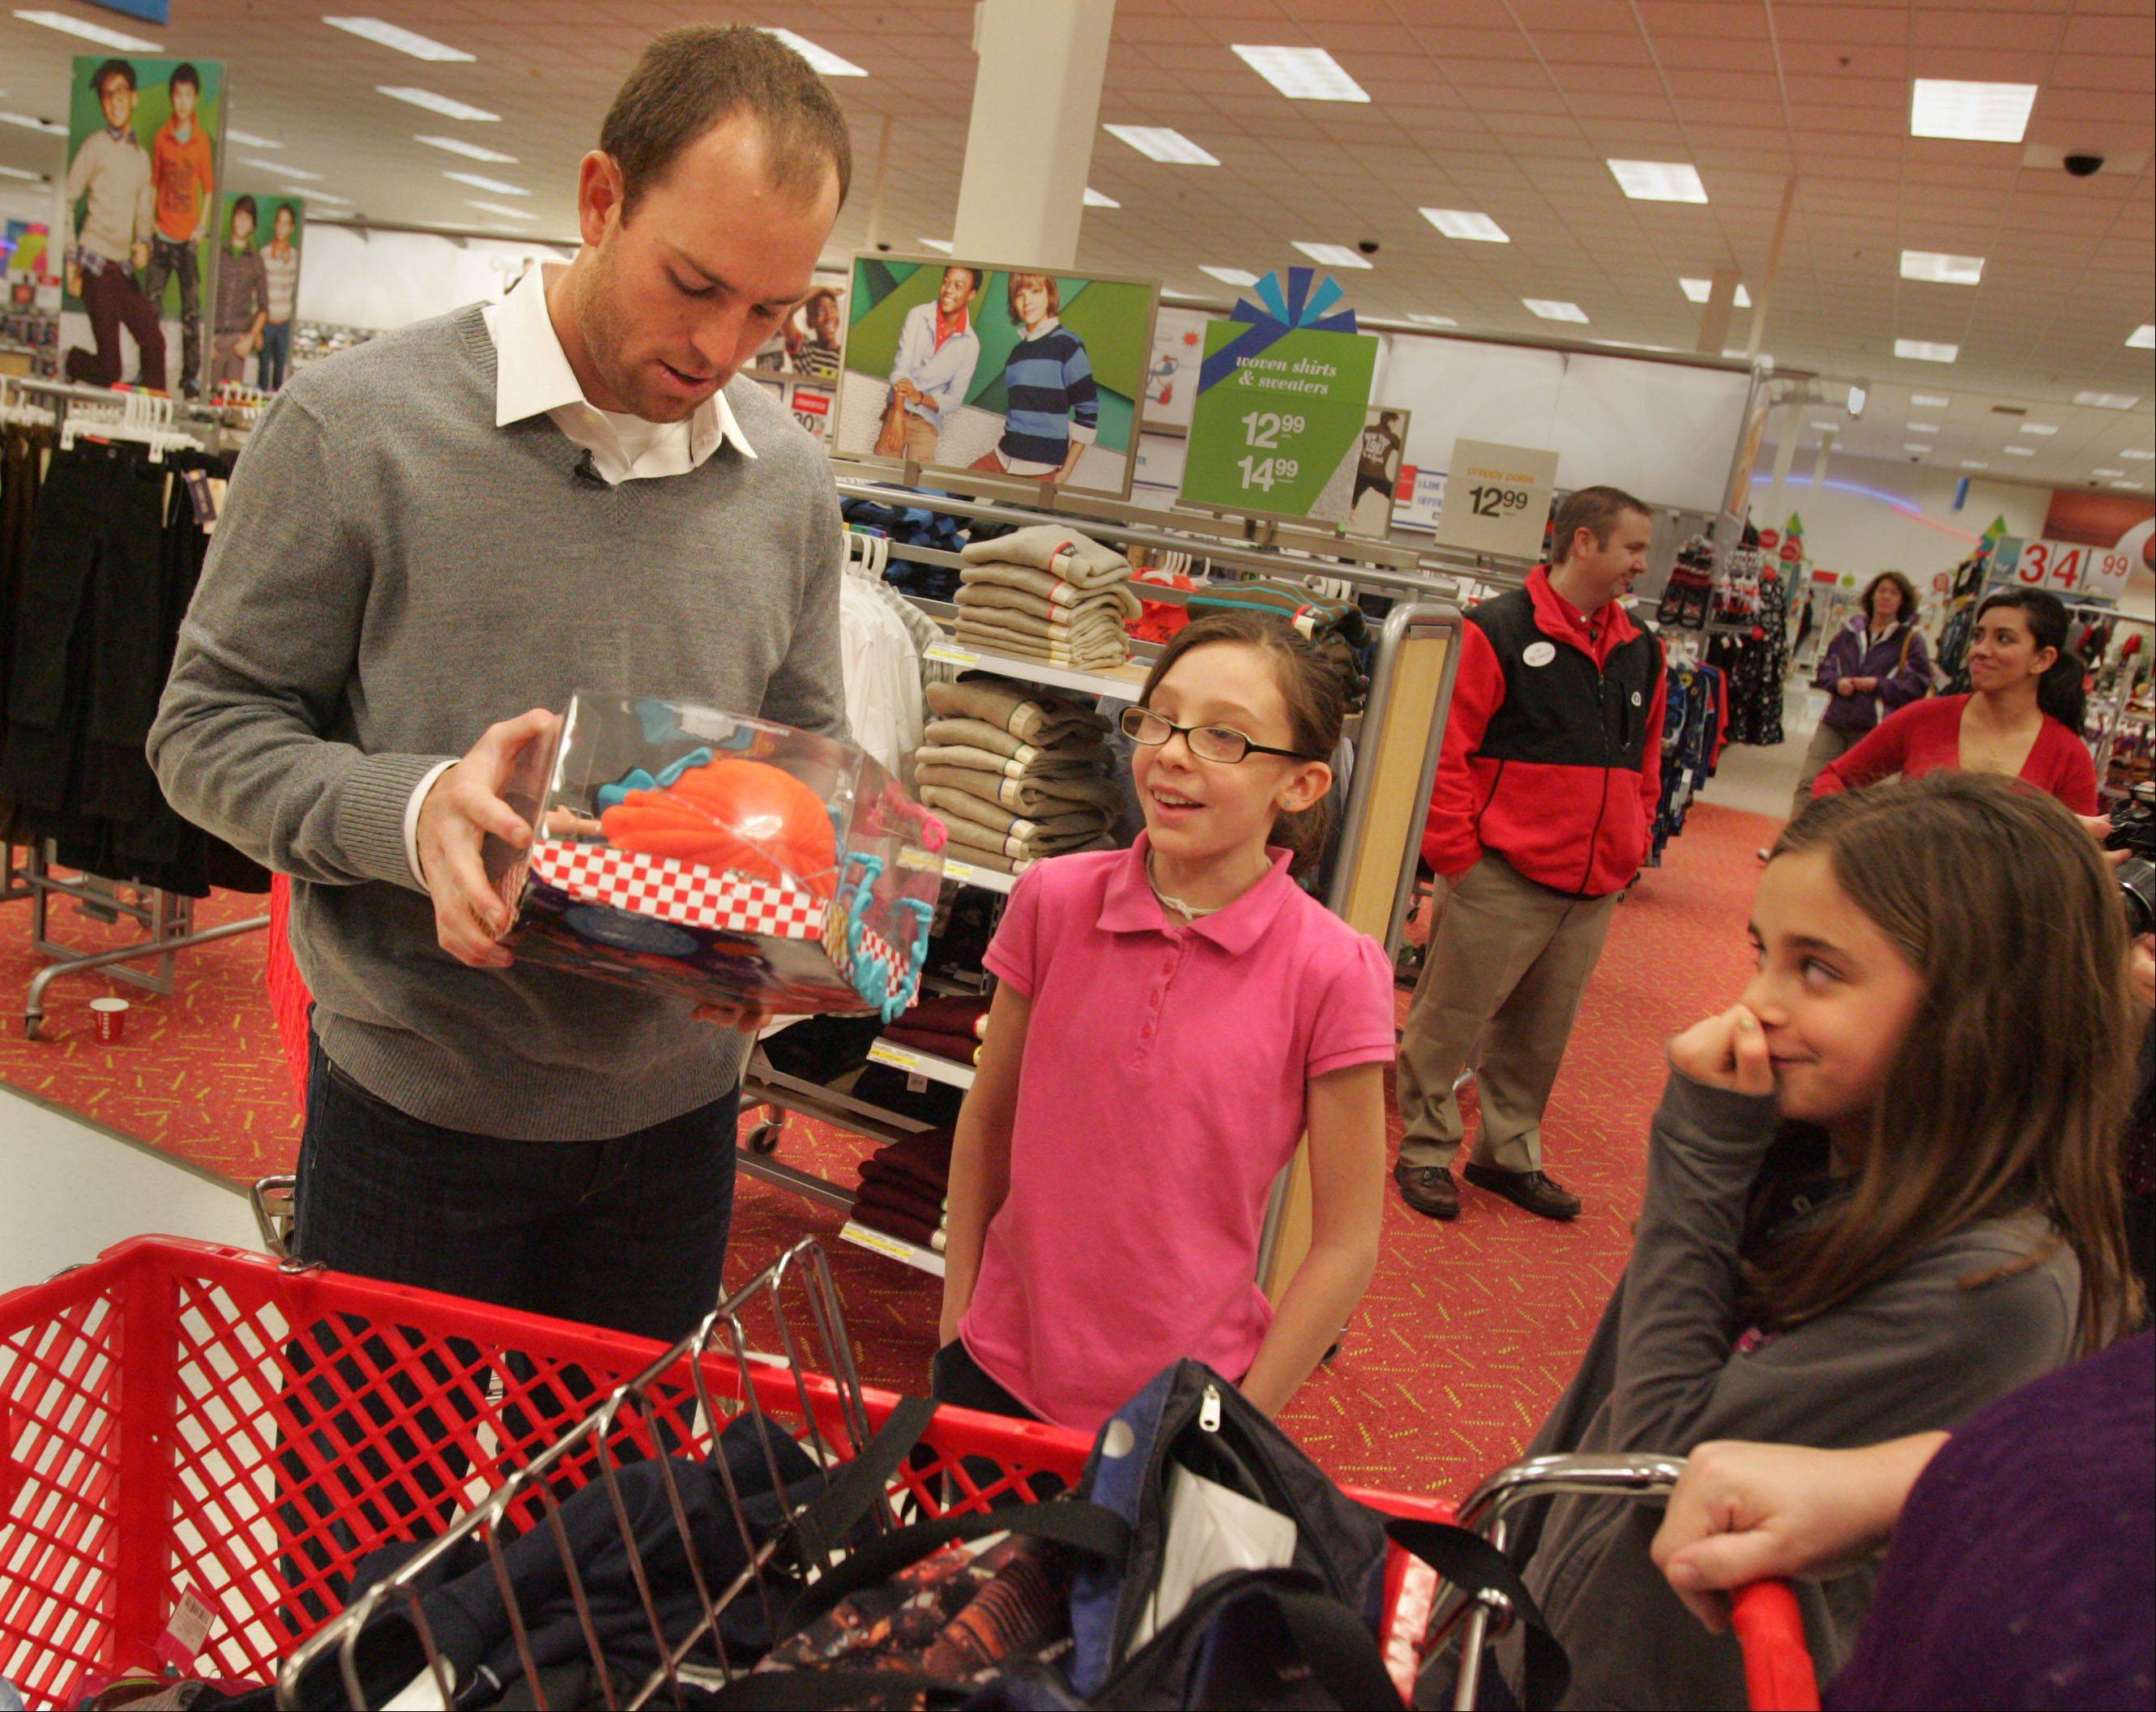 Bears kicker Robbie Gould checks out the gifts picked out by Mooseheart students Suriah Randolph, 11, center, and Autumn O'Neal, 9, during the kids' shopping trip at Super Target Monday in St. Charles. Gould, for the second straight year, showed up to help Mooseheart kids shop for Christmas, a project funded by his charity The Goulden Touch.